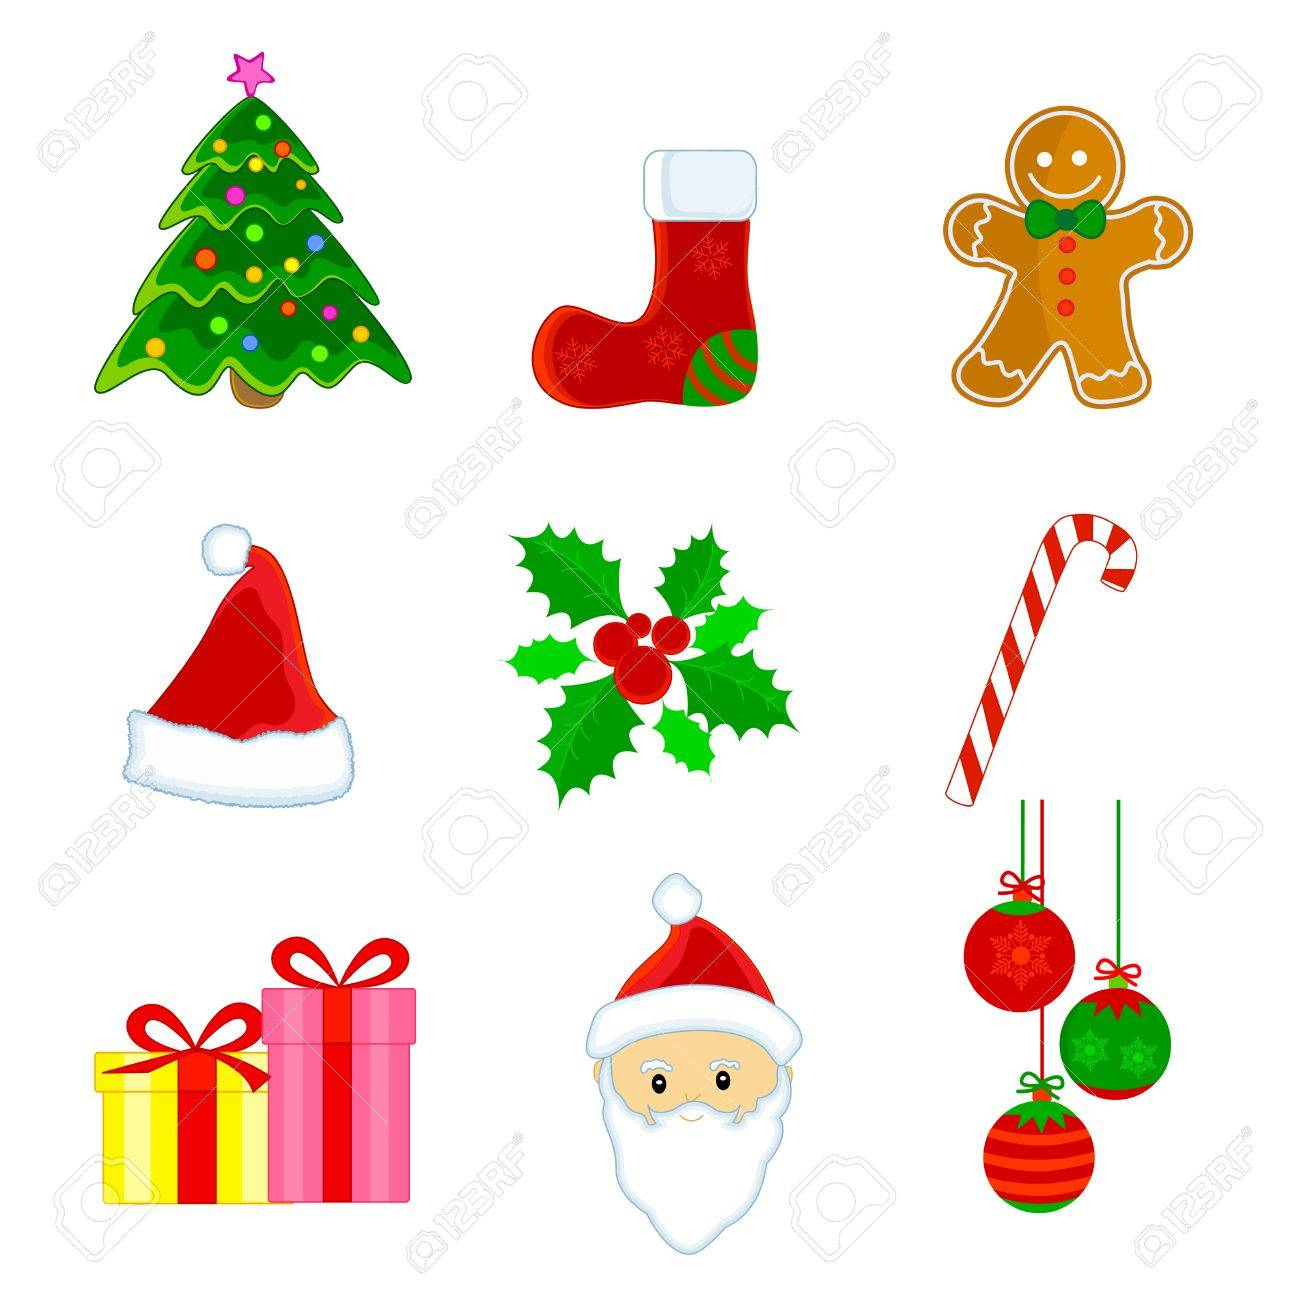 Cute Christmas Web Icon Clipart Set Isolated On White Background Stock Vector